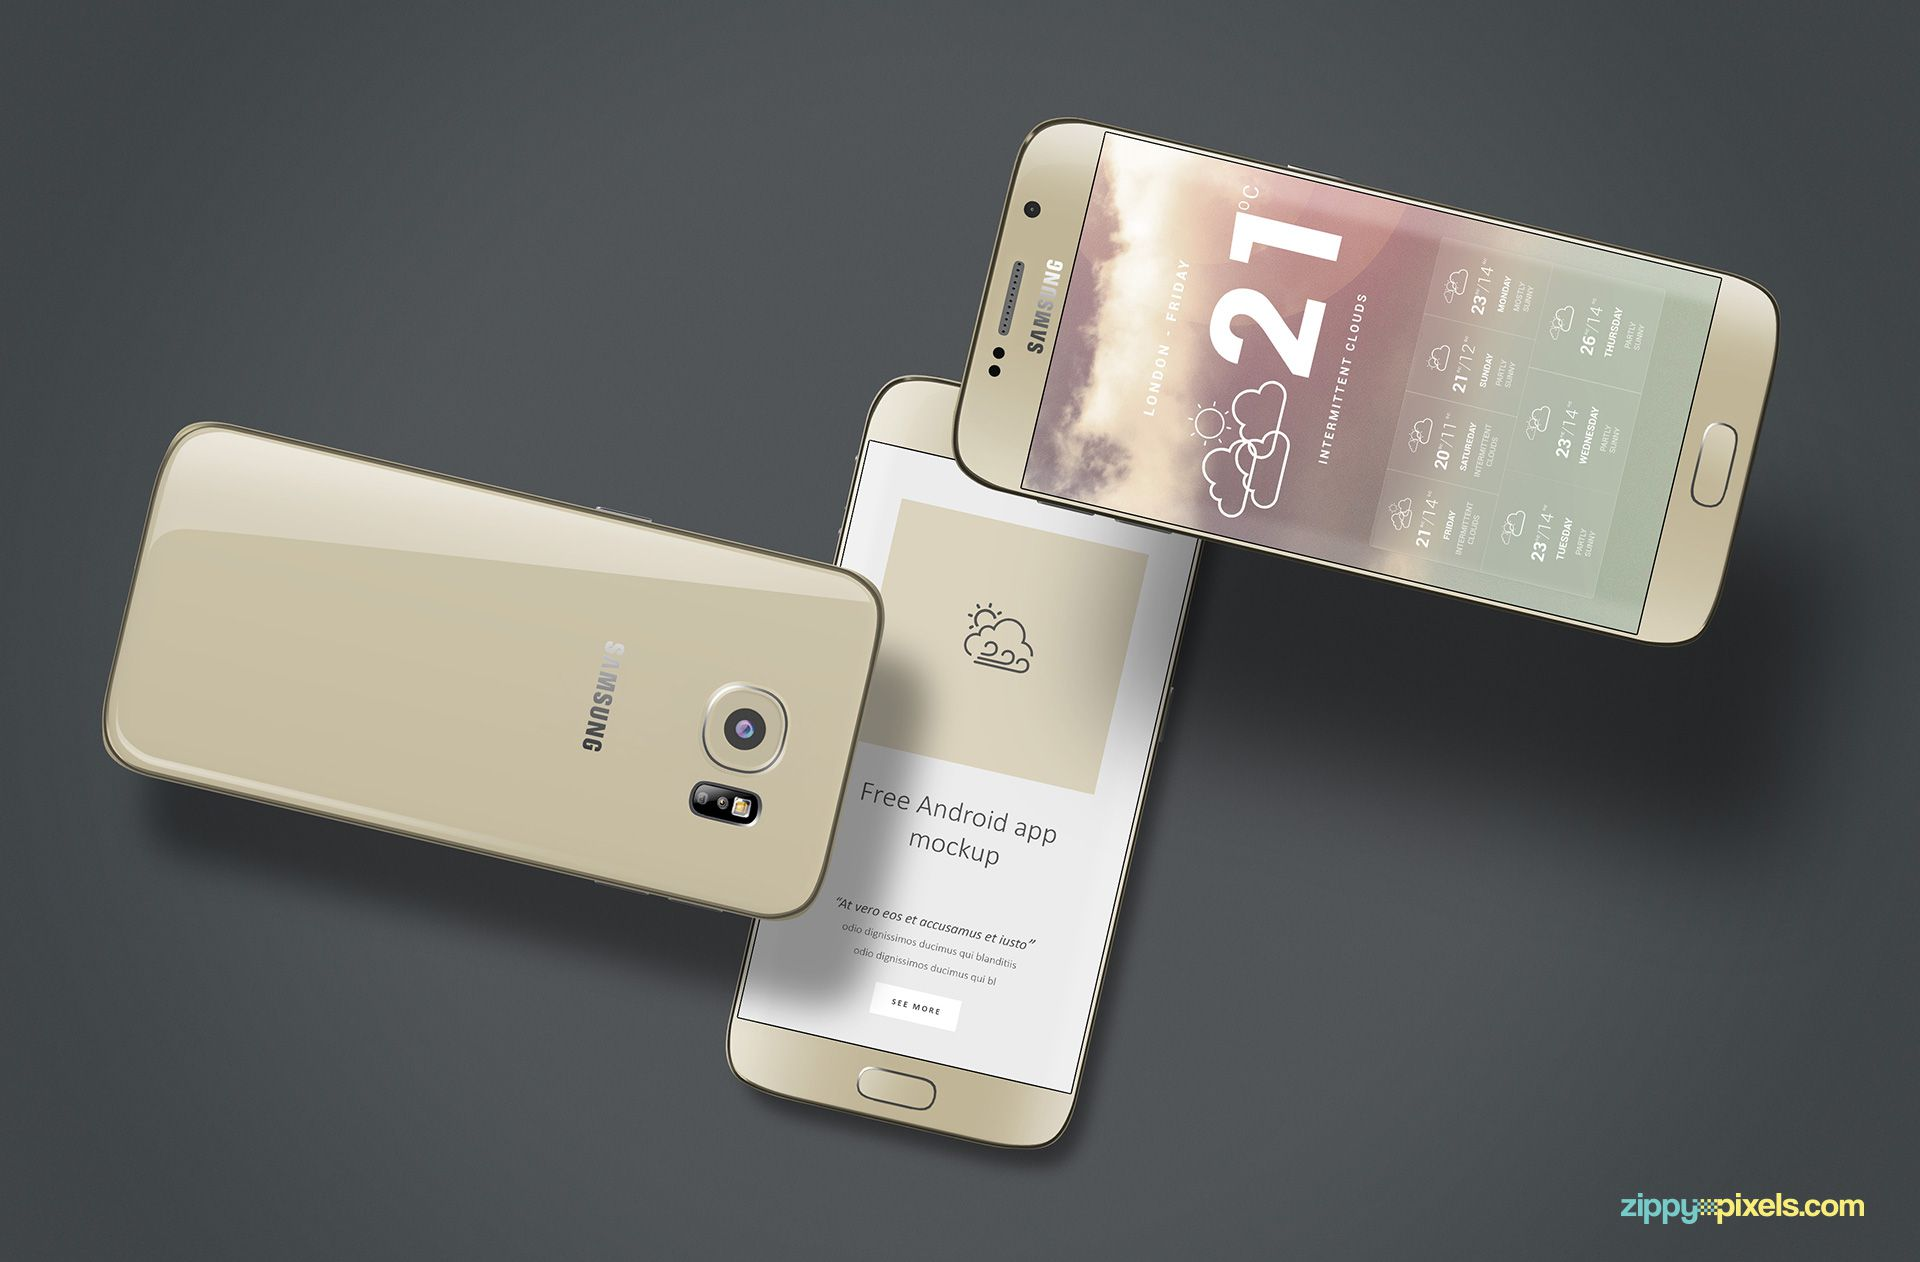 Samsung galaxy S6 mockup in gold.